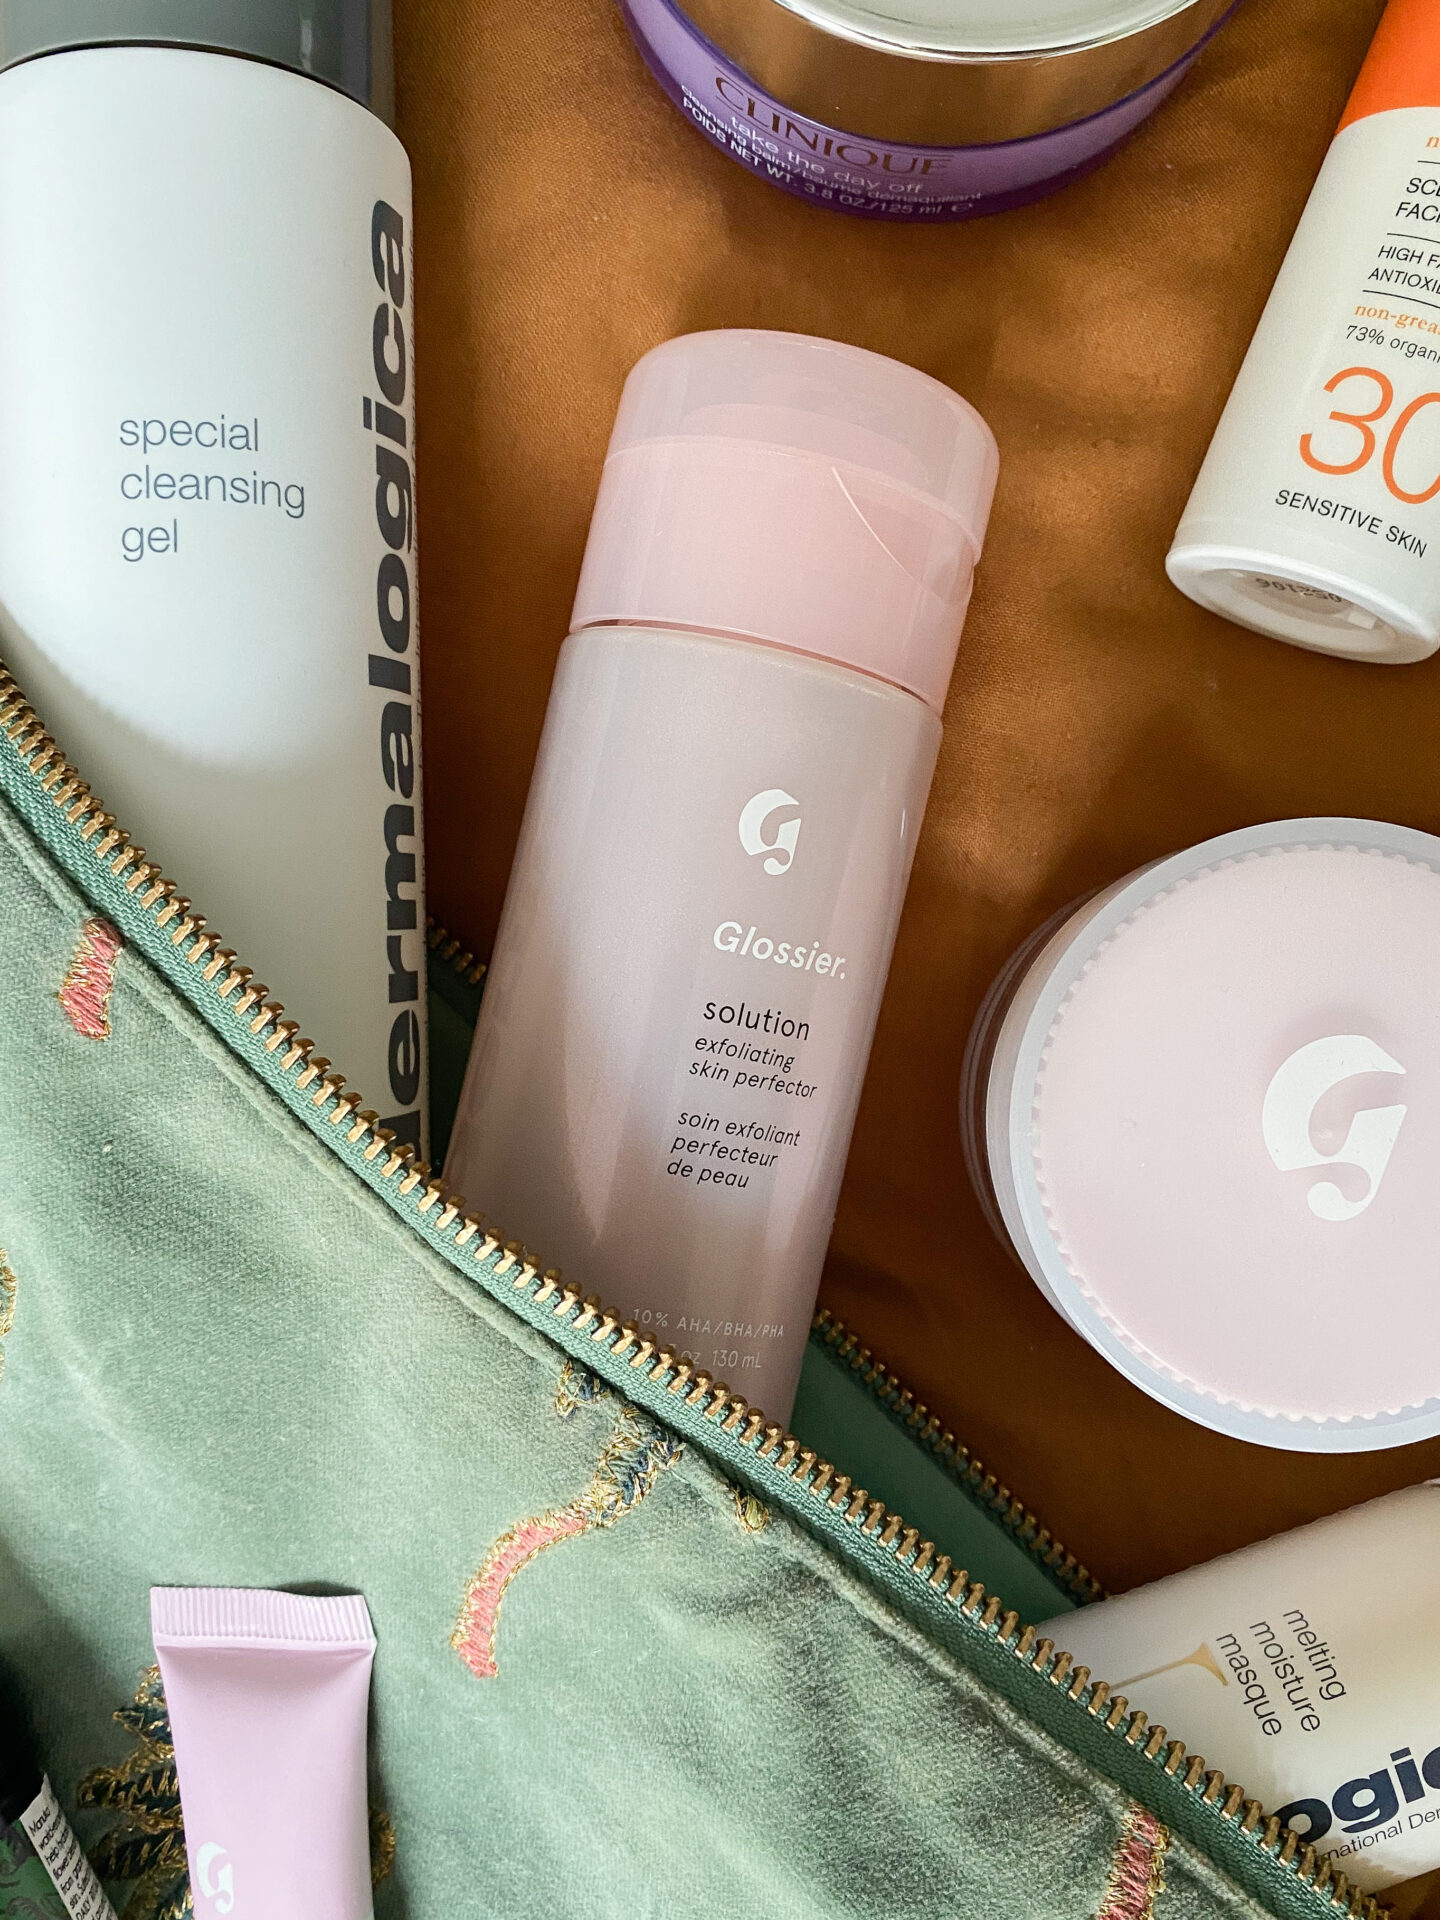 Glossier exfoliating solution